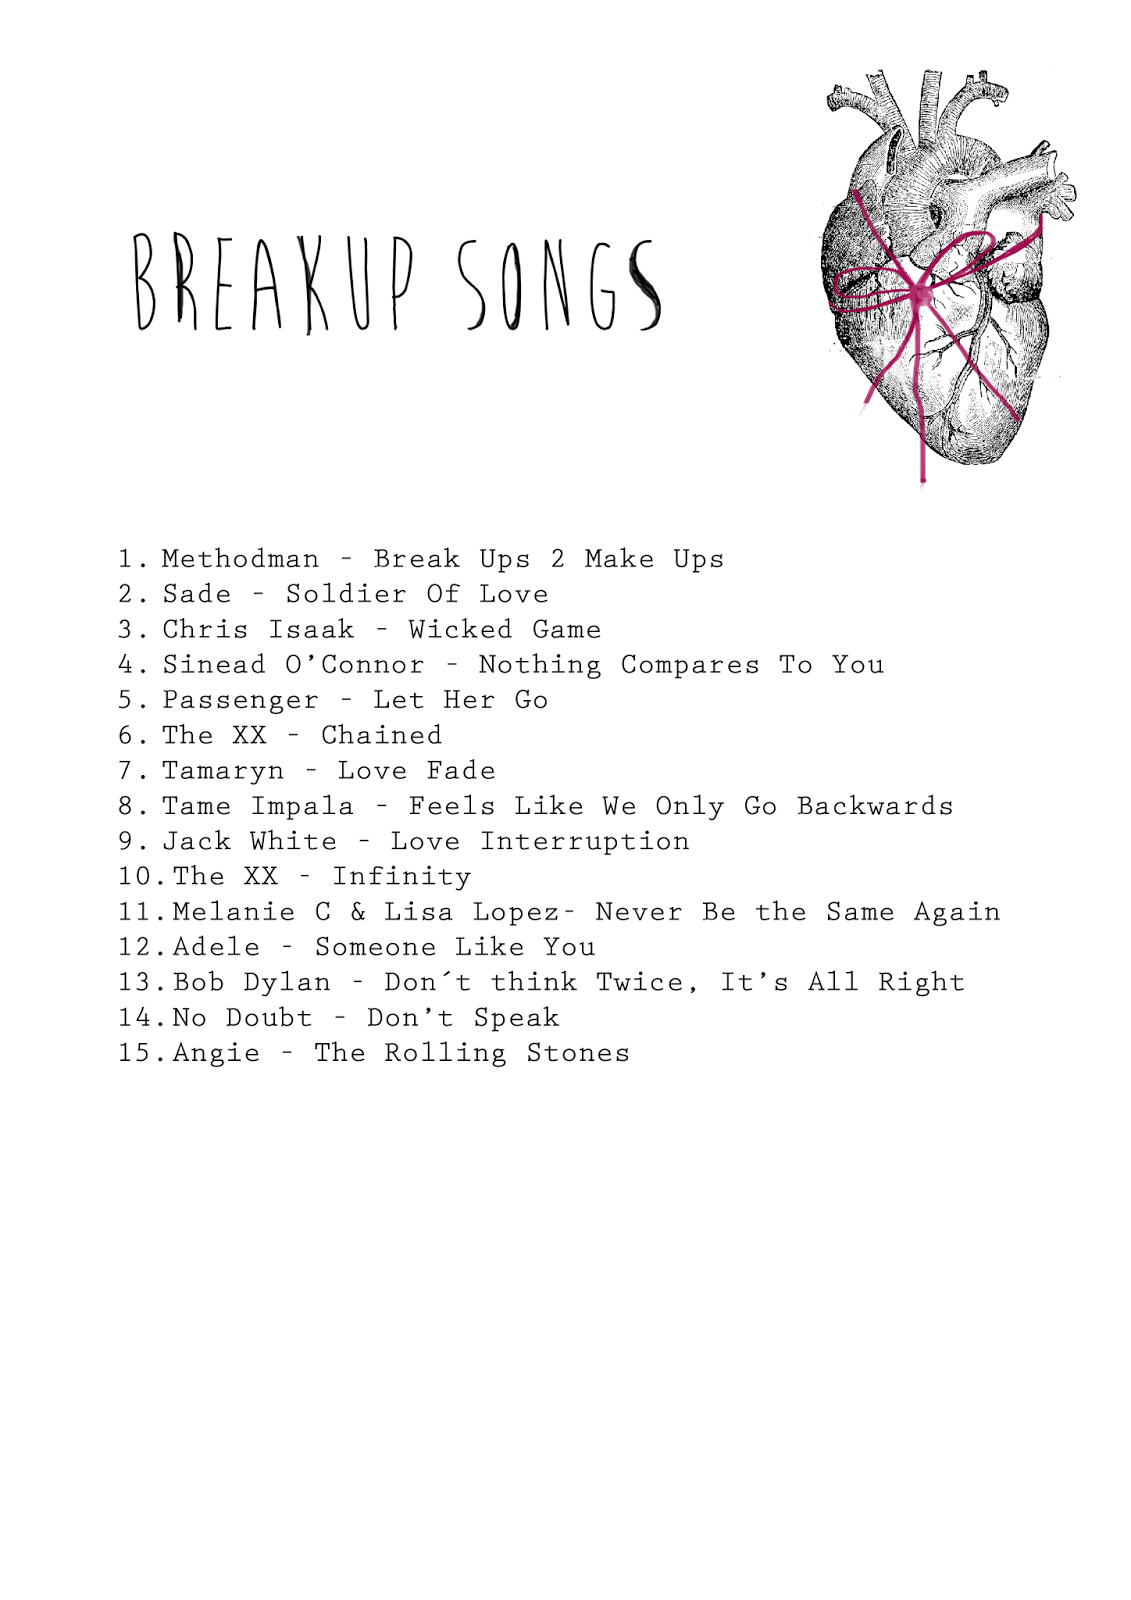 Best songs about breaking up